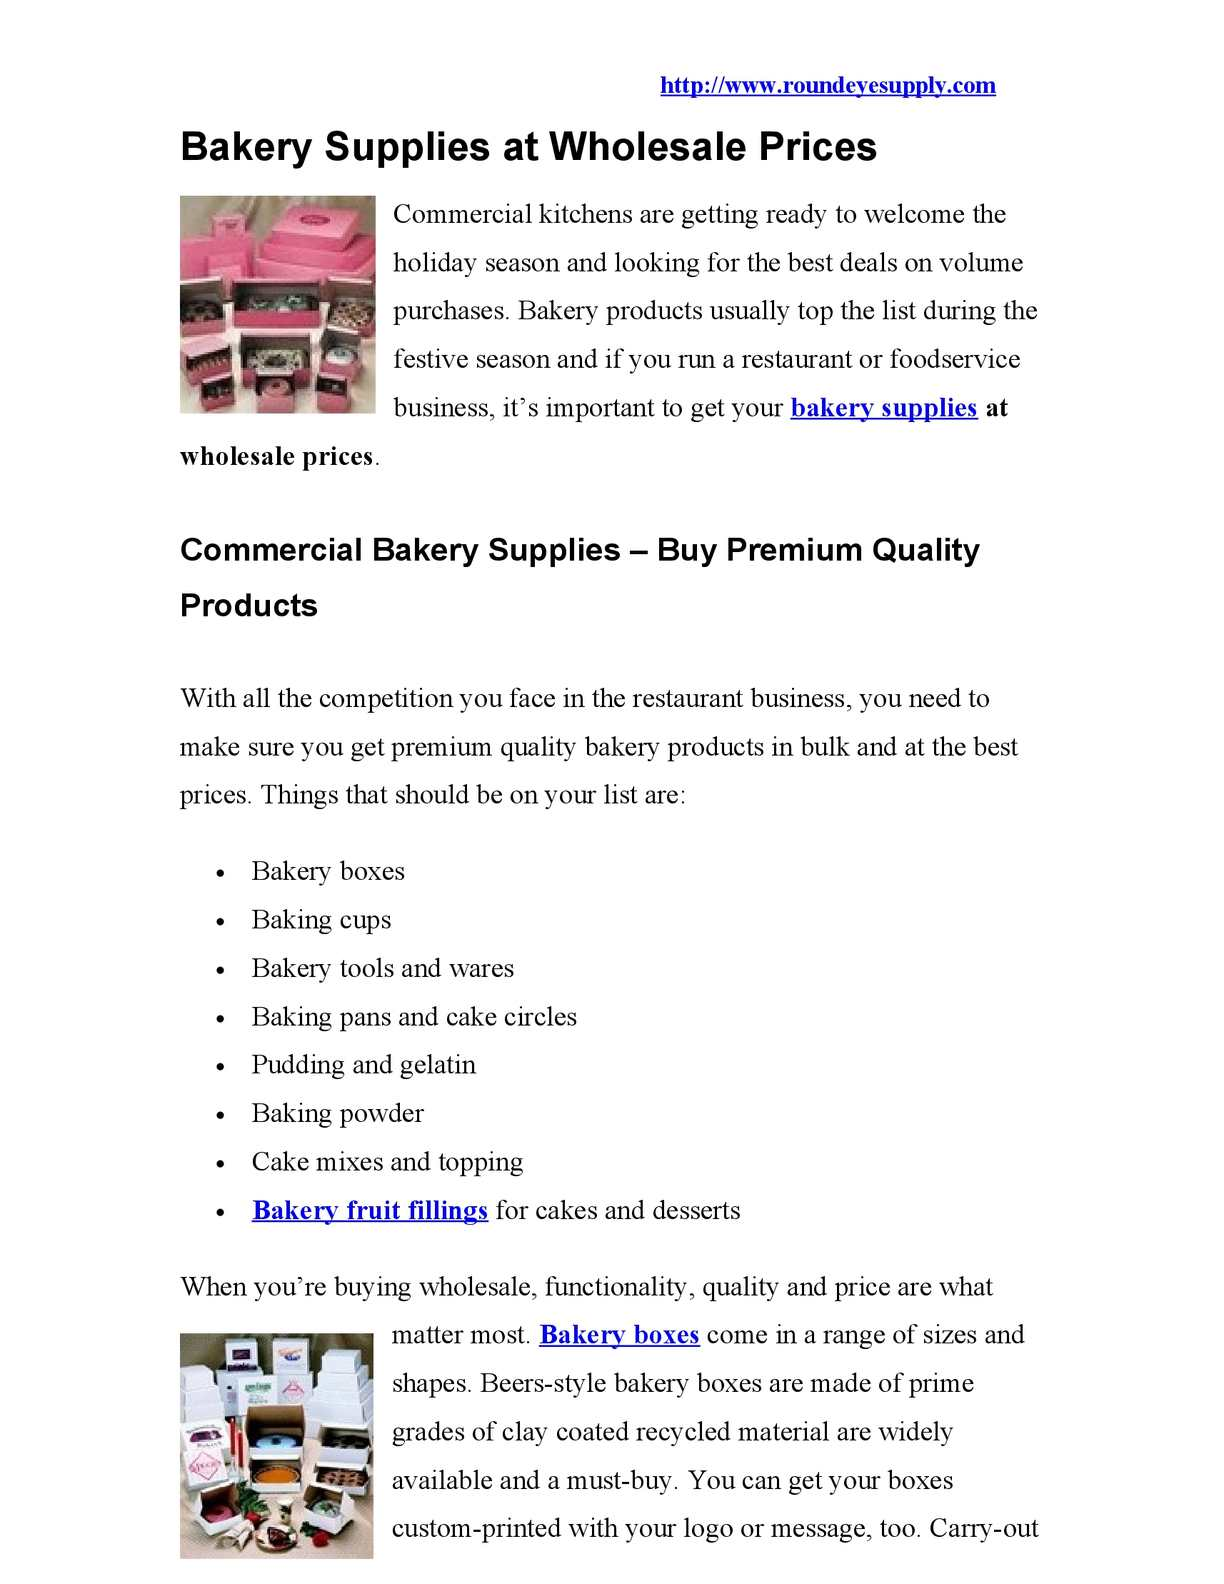 Calaméo - Bakery Supplies at Wholesale Prices